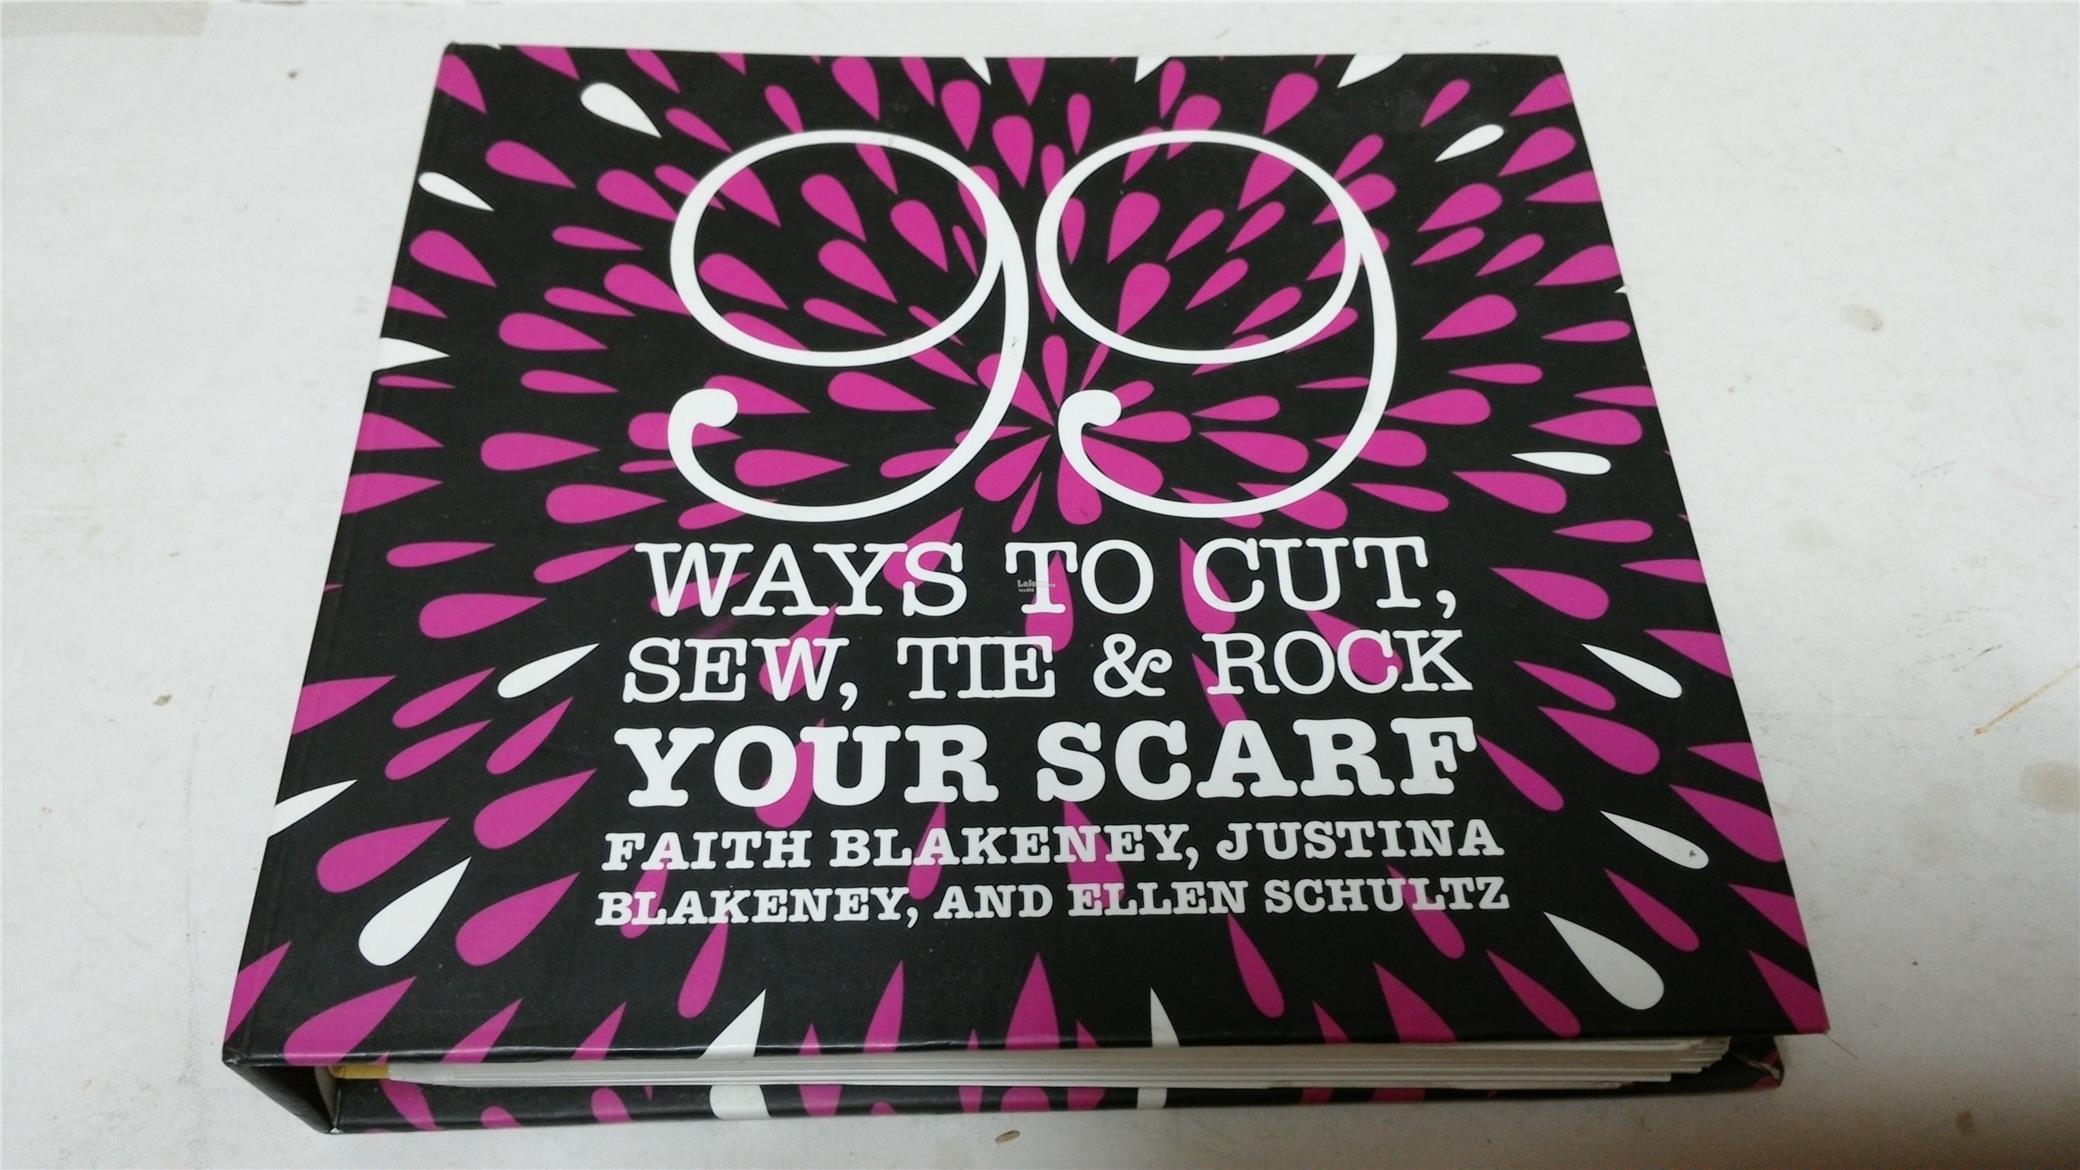 99 WAYS TO SEW , TIE & ROCK YOUR SCARF BOOK